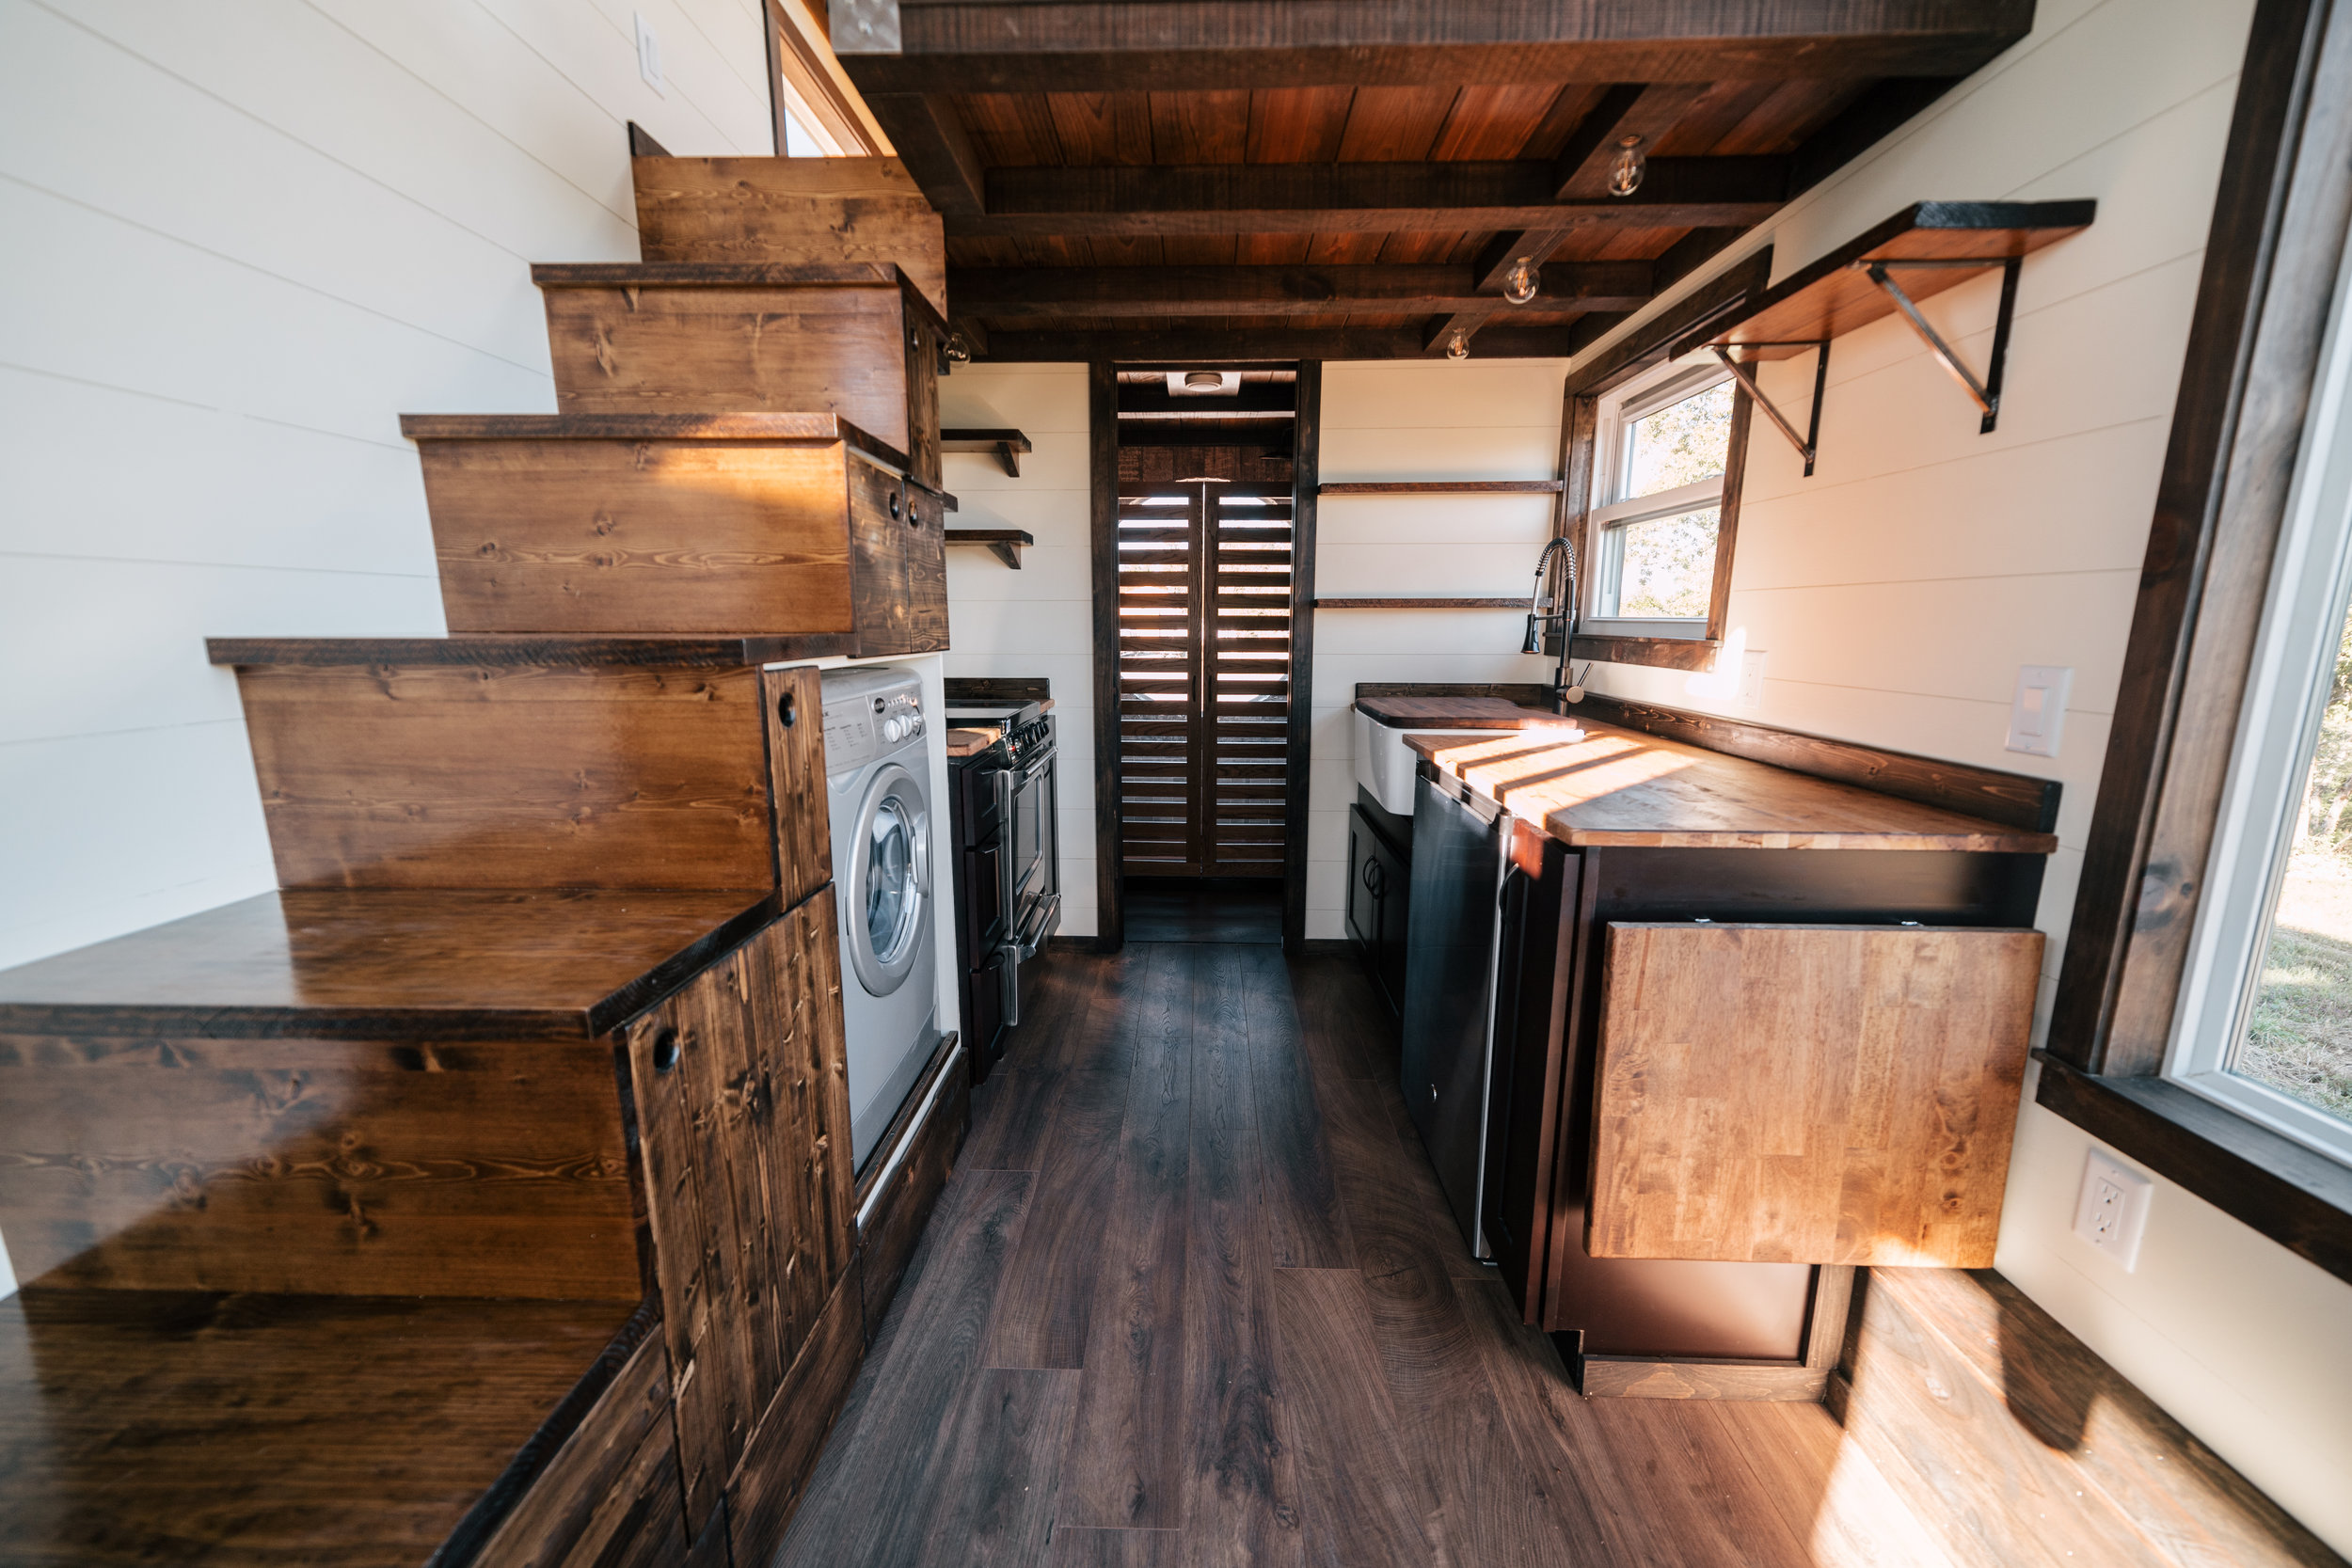 The Silhouette by Wind River Tiny Homes - ship lap, fold down table, storage stairs, open kitchen shelving